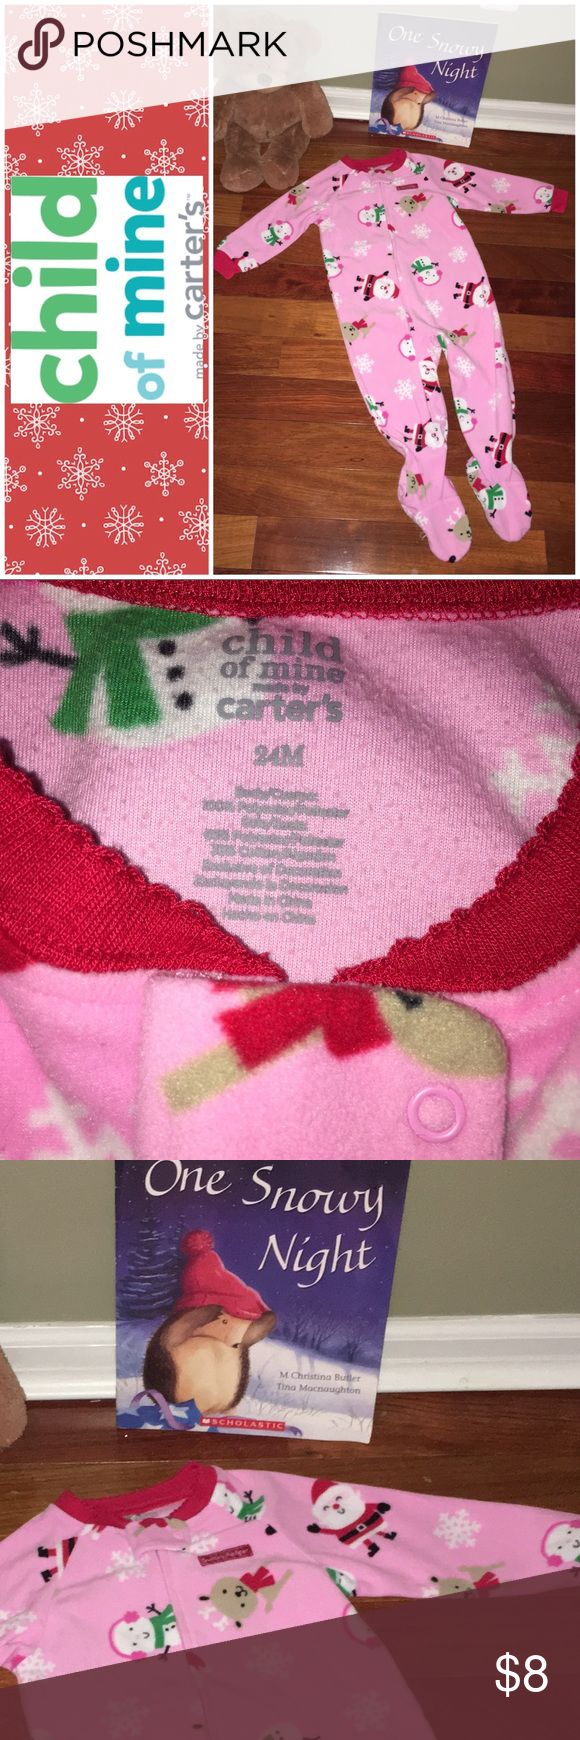 Carter's Child of Mine Blanket Sleeper Pajamas Adorable Carter's Child of Mine Fleece Footie PJs Christmas 🎄🎅🏻🥁☃️  🎉Bundle with the other Blanket Sleepers and super adorable Santa outfit listed separately and save. 🎉  We are a smoke free hypoallergenic pet friendly home we have a Morkie. Pajamas